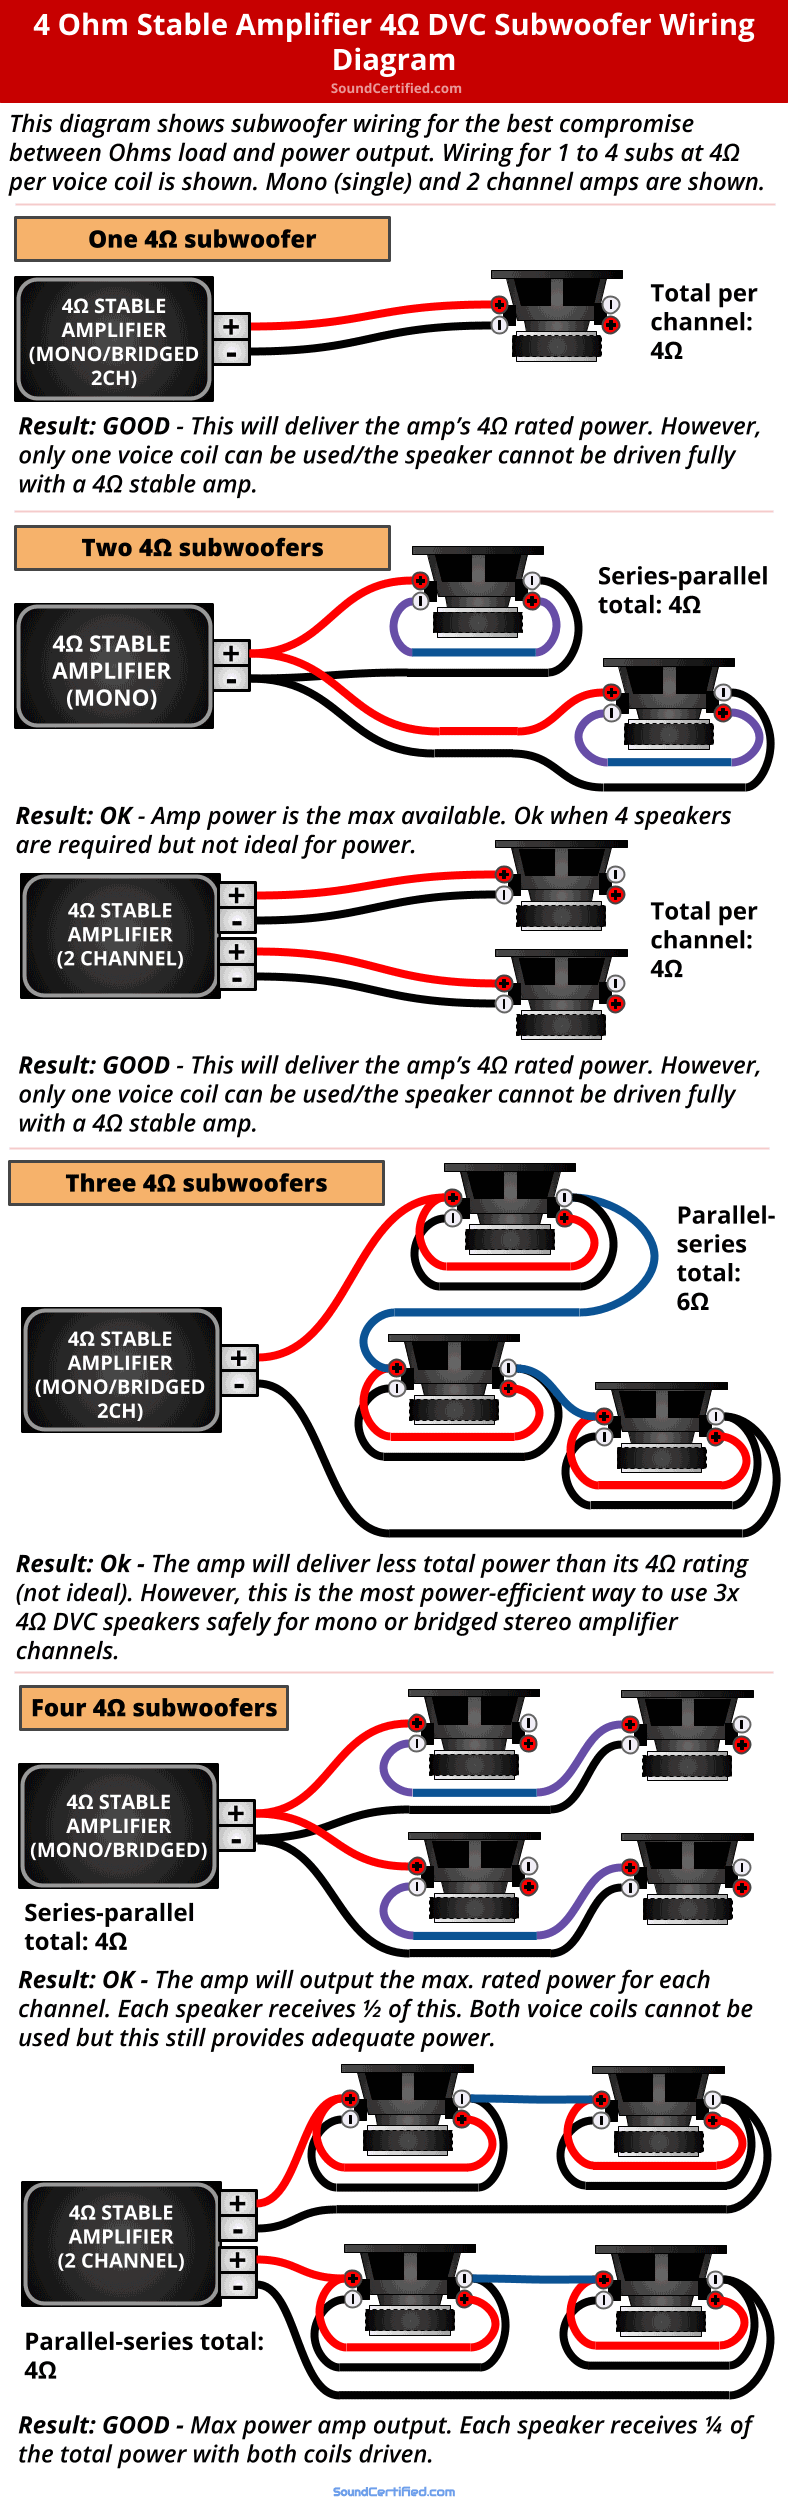 4 ohm stable car amp 4 ohm DVC subwoofer wiring diagram